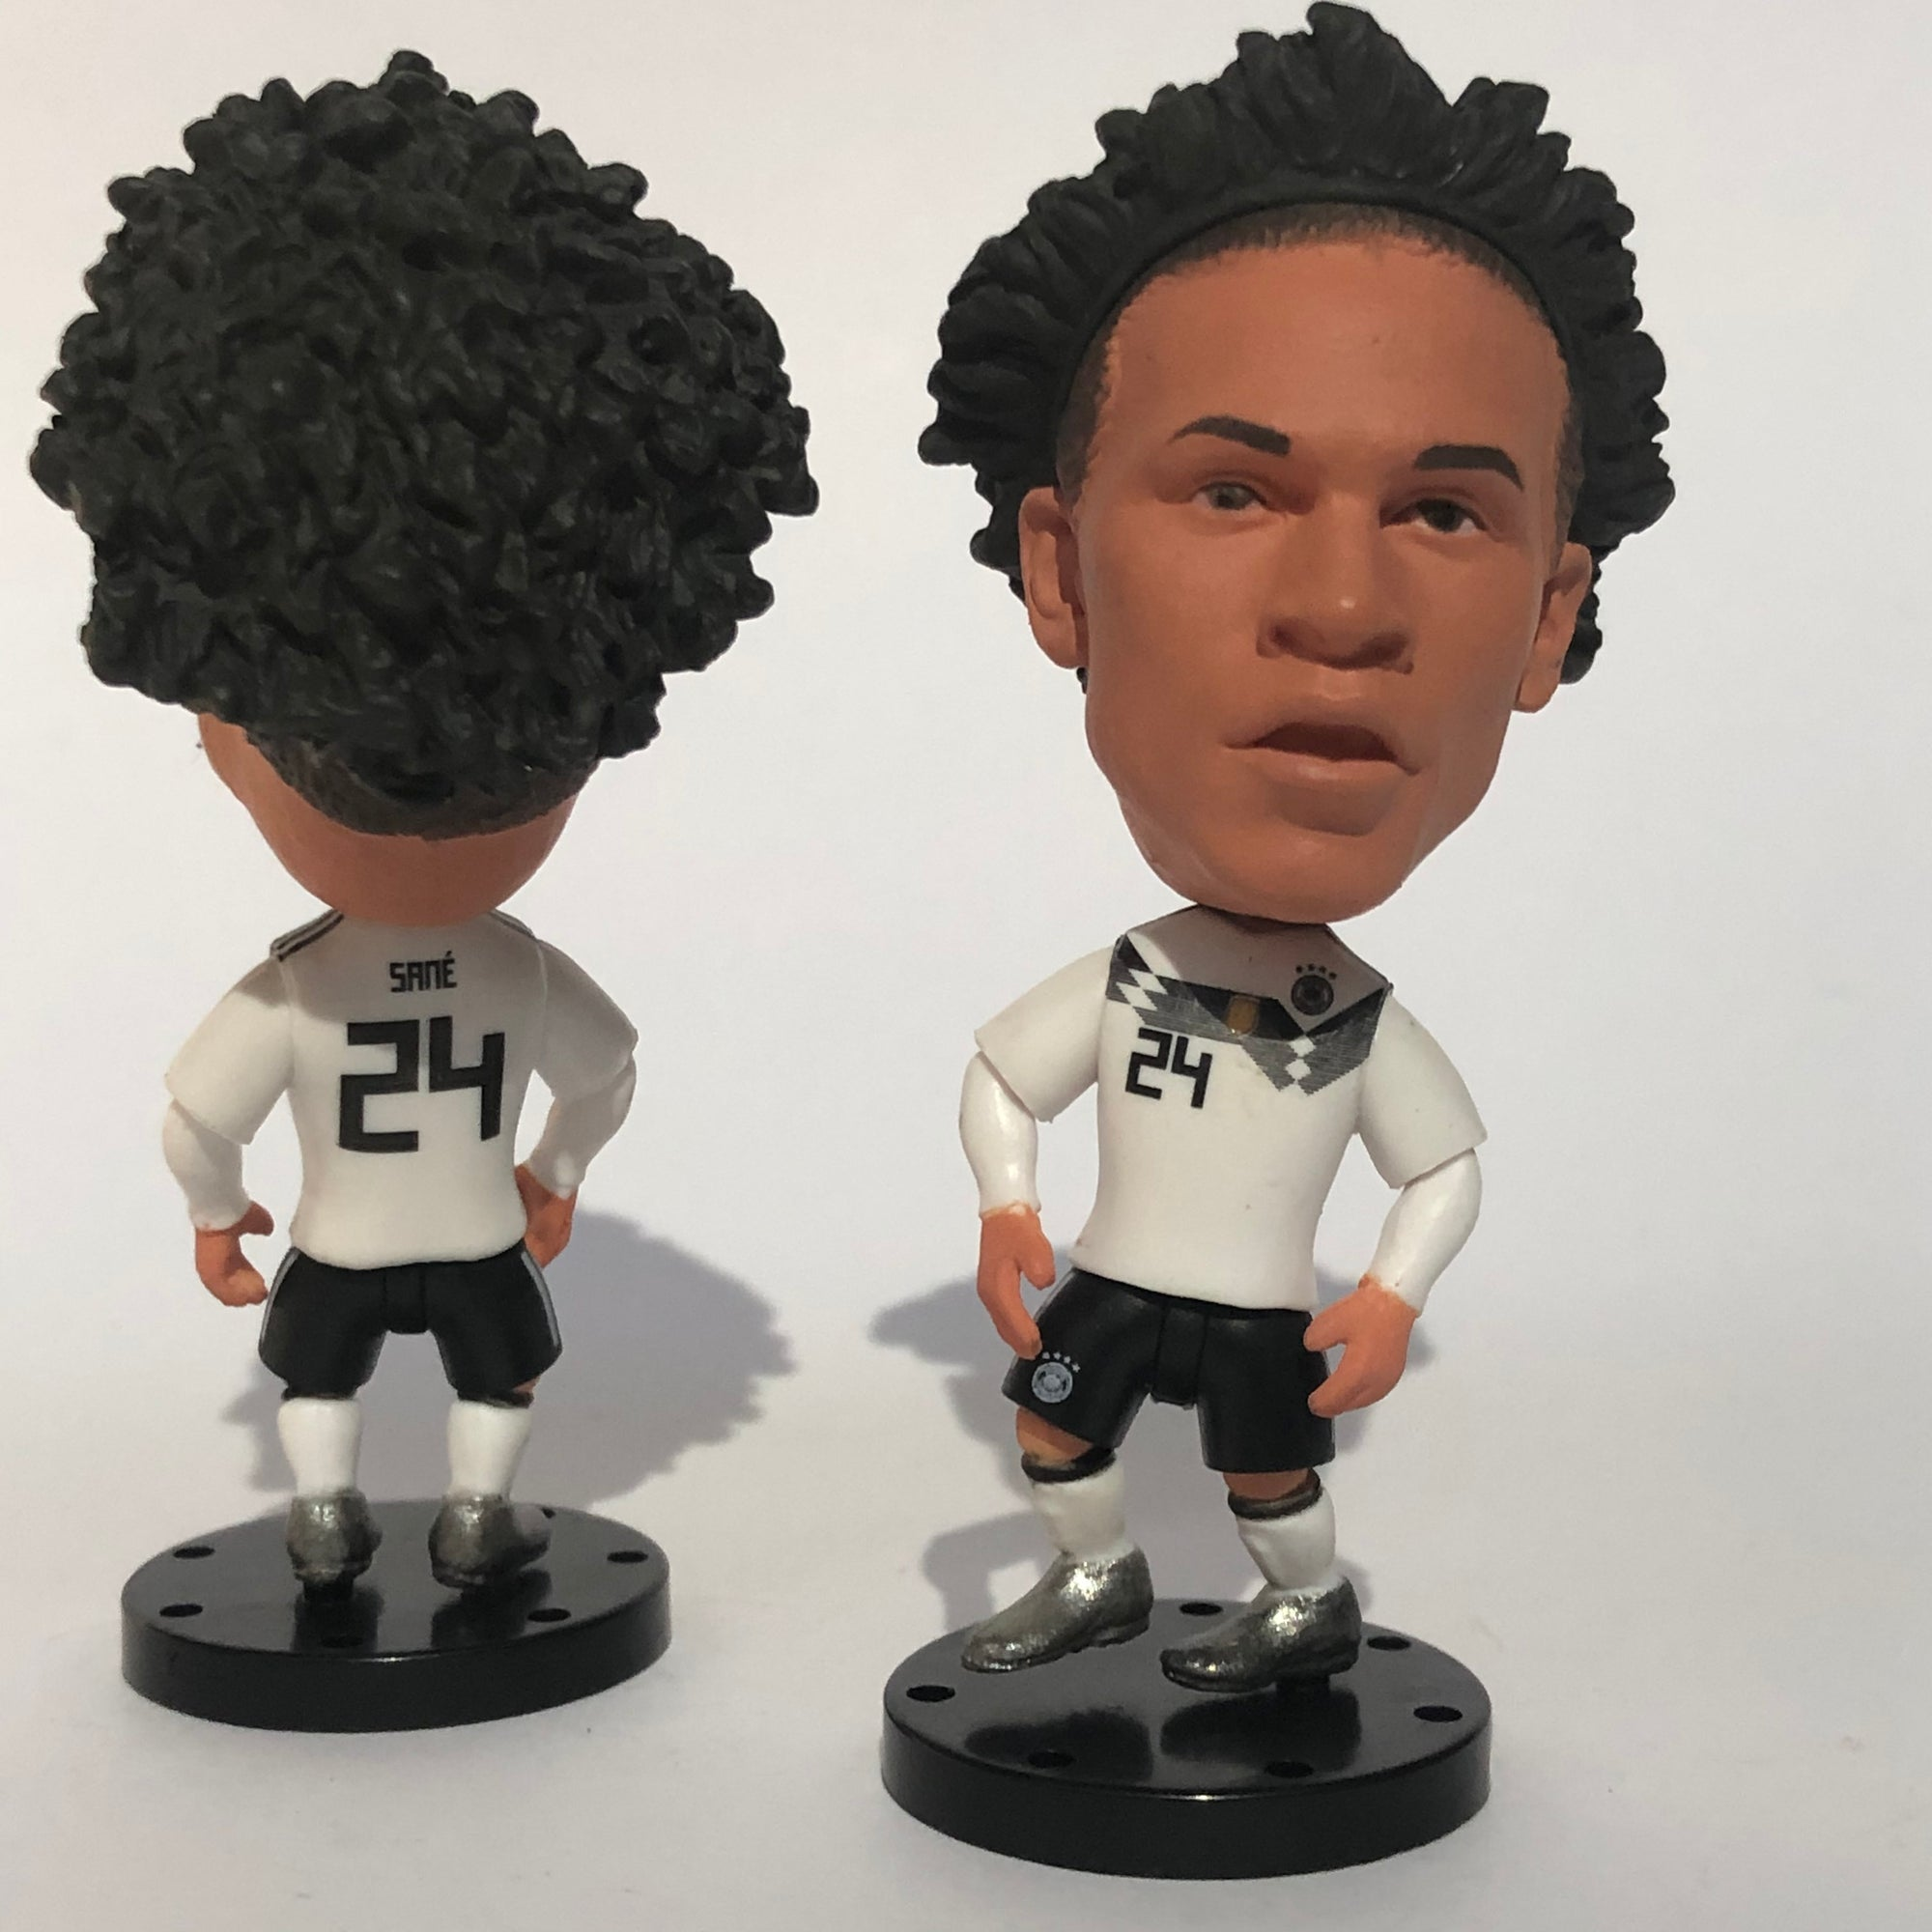 Sane Germany Figurine